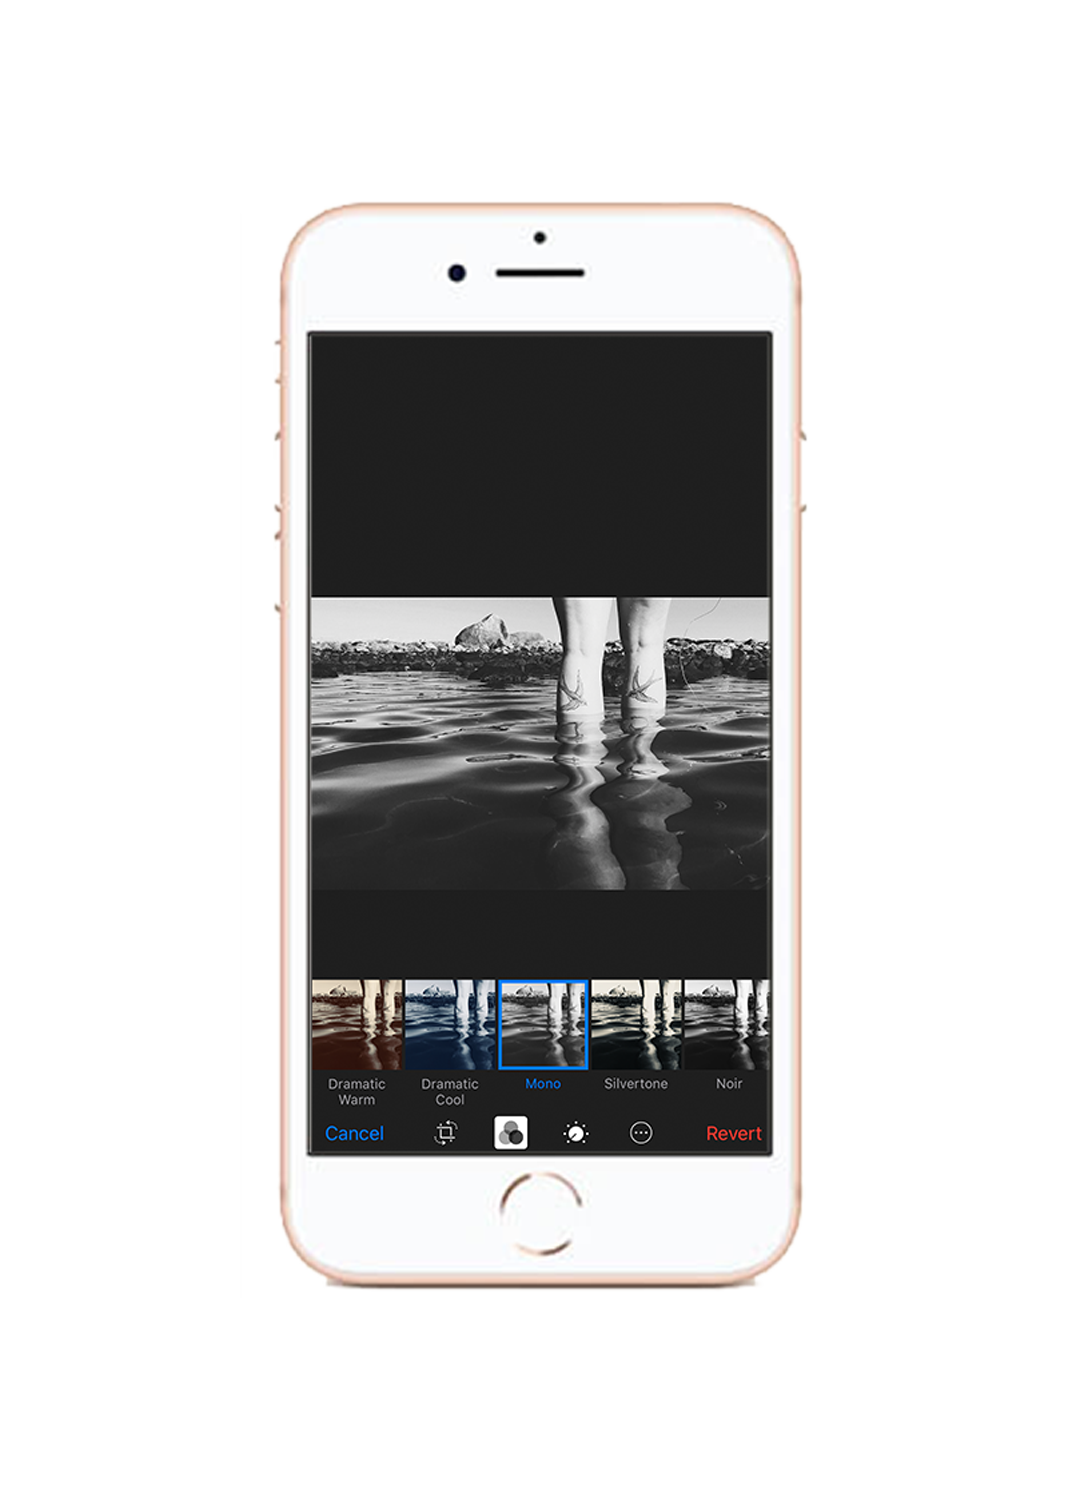 3. Choose filter - Choose the filter you like the most, then apply the same on all your photos.